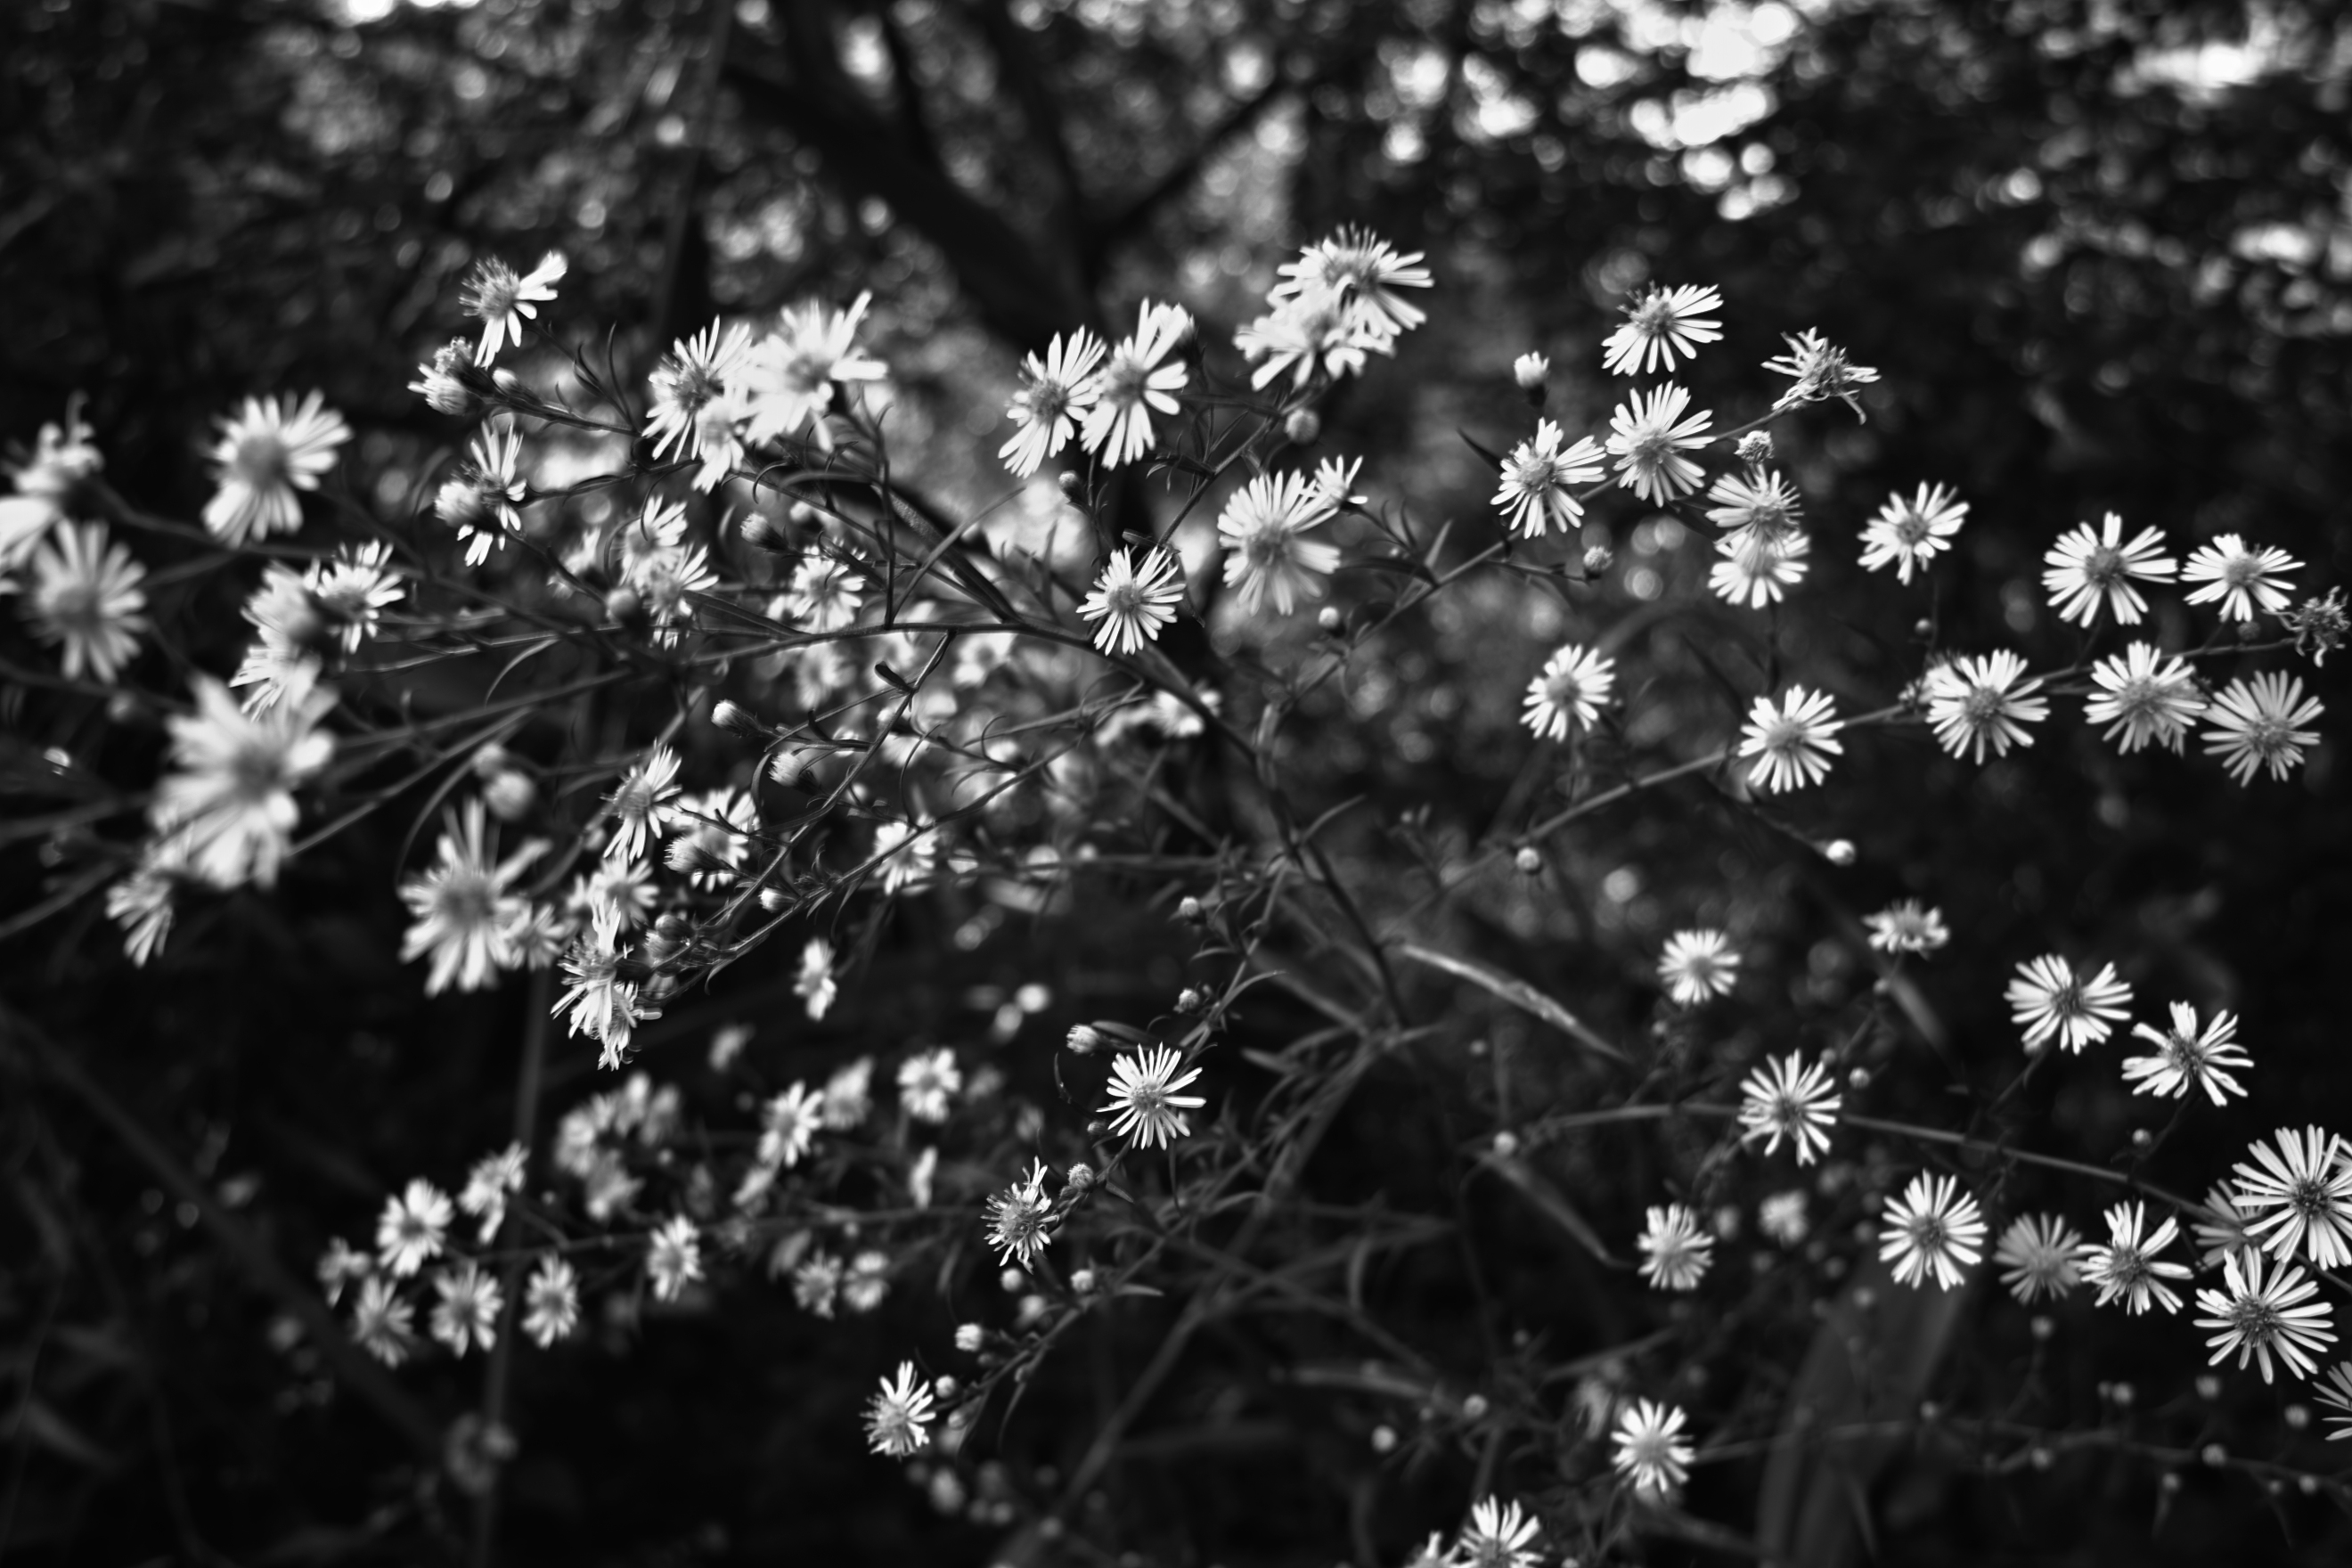 Black Flowers Spring White Flowers Images Wallpaper Backgrounds For Powerpoint Templates Ppt Backgrounds